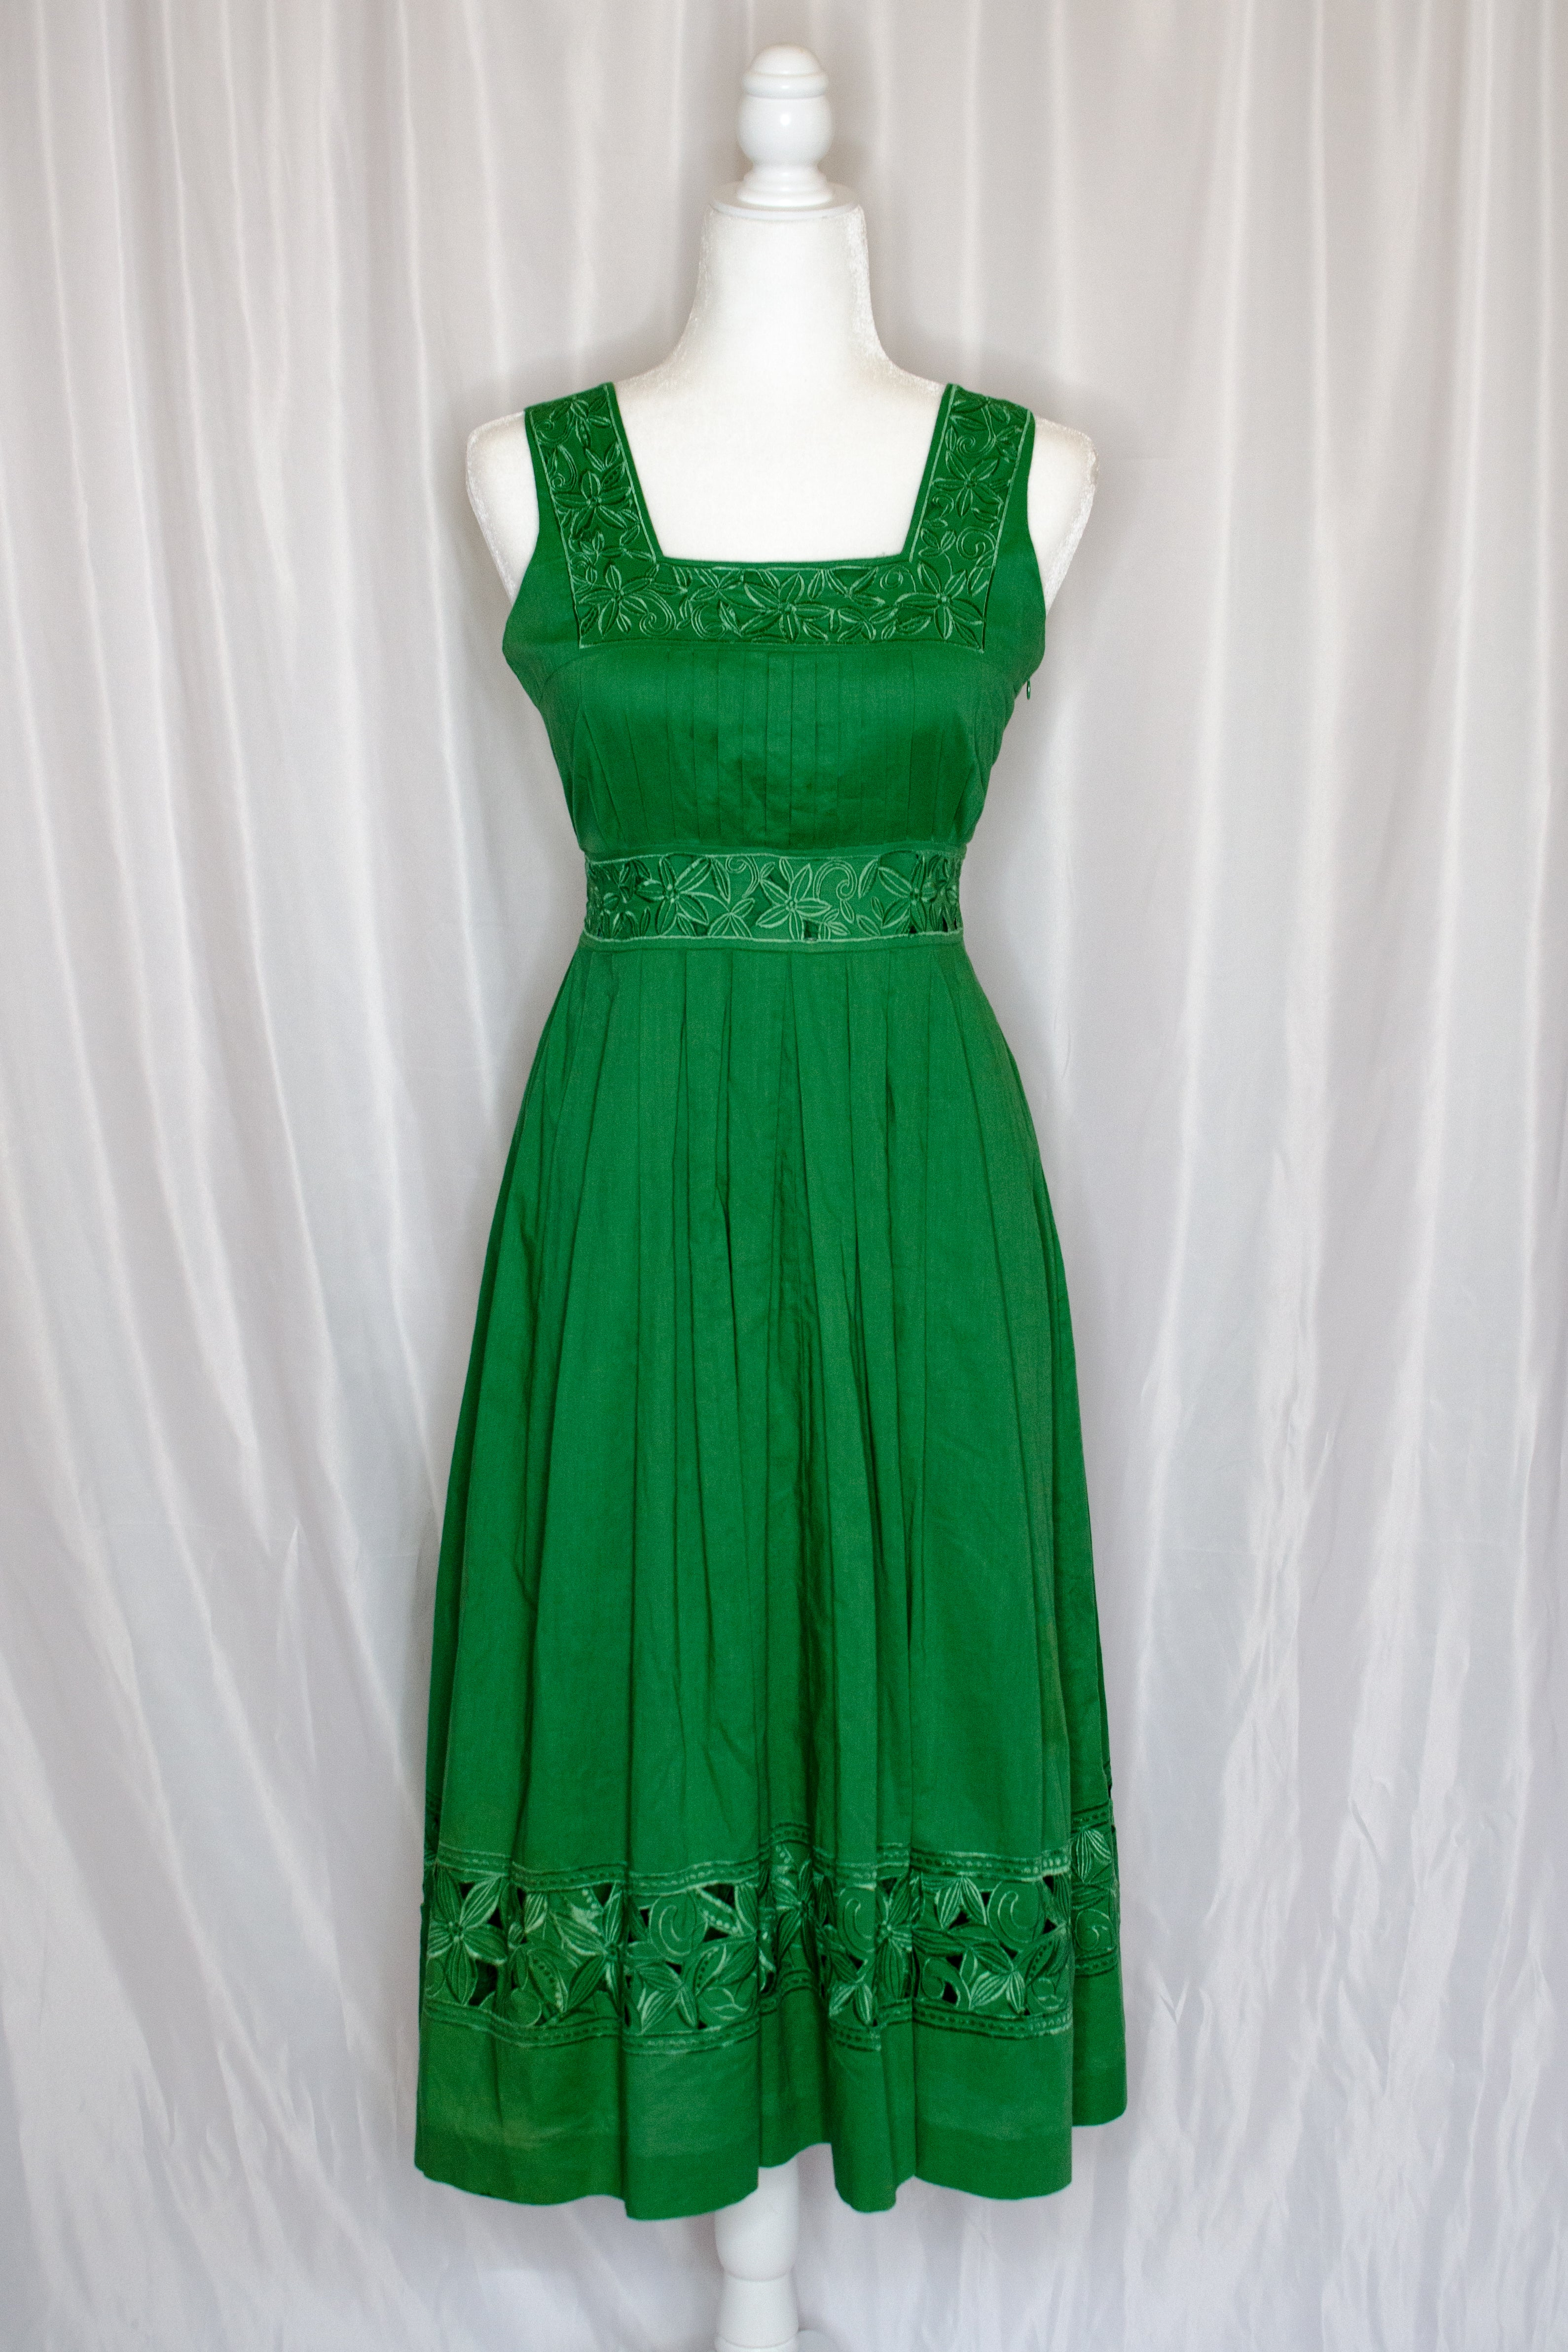 Vintage 70s-80s Kelly Green Dress / S